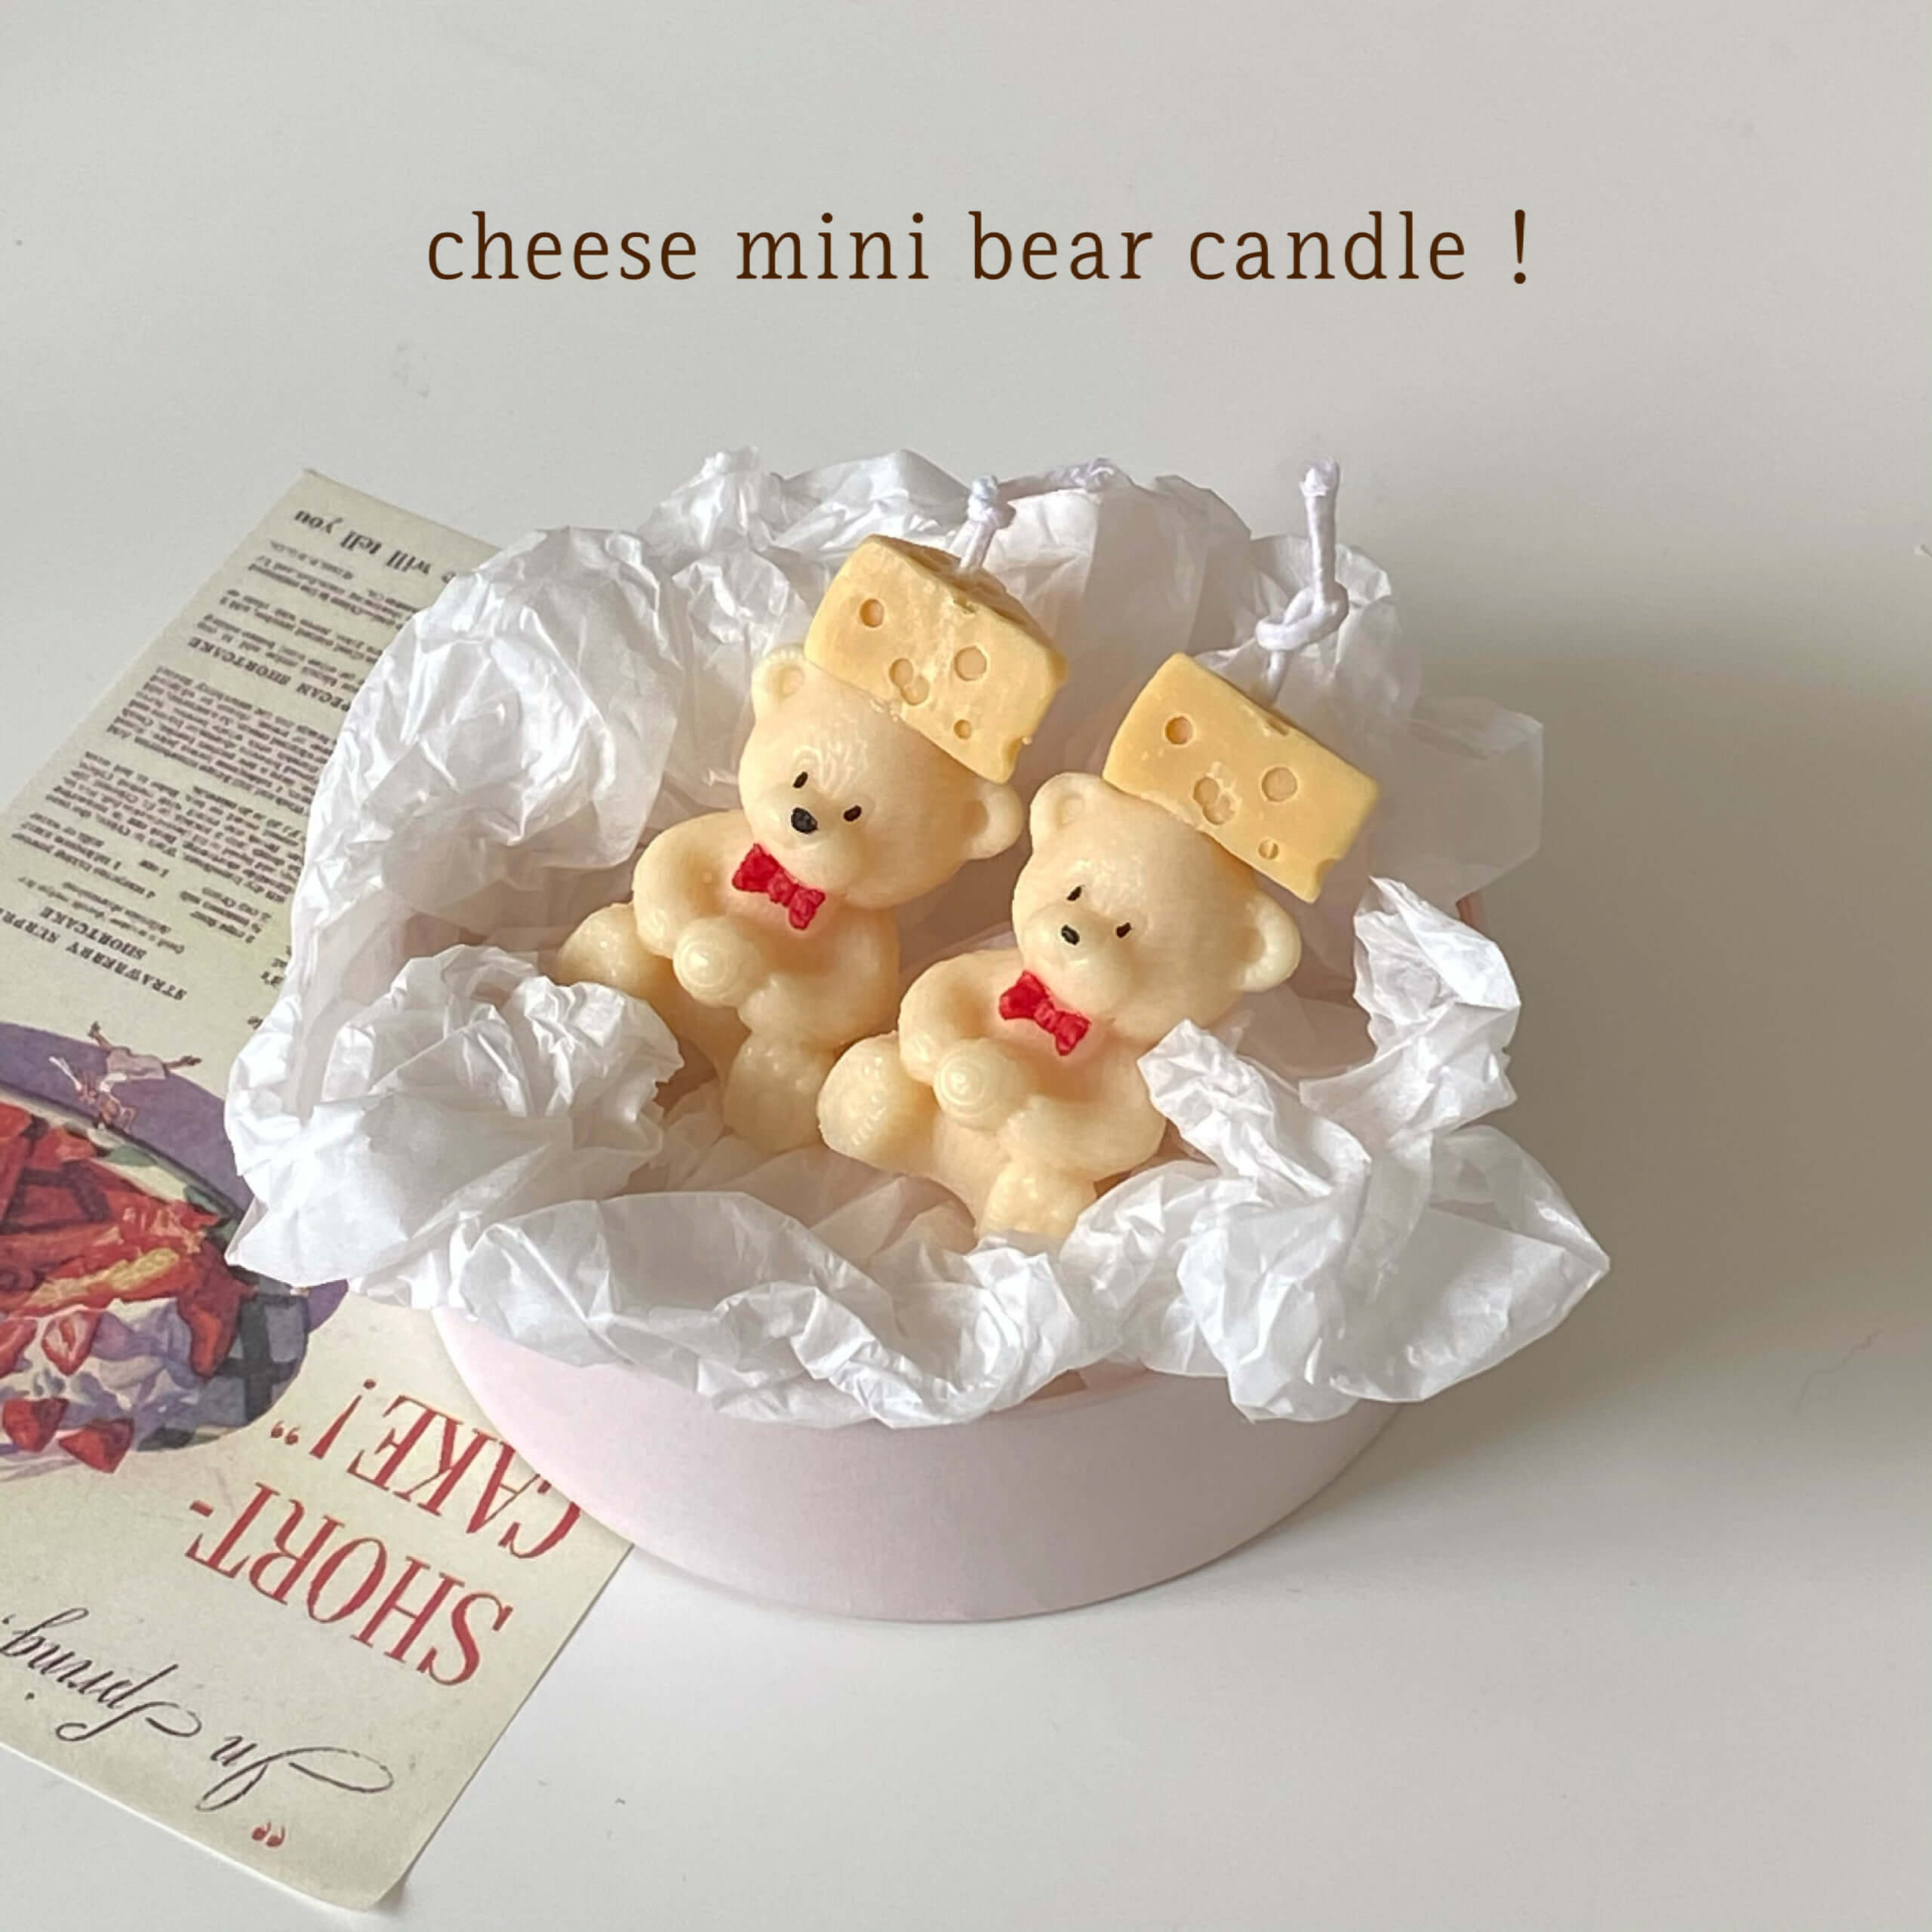 Lily candle(リリーキャンドル)のcheese mini bear candle/¥900(税込み)